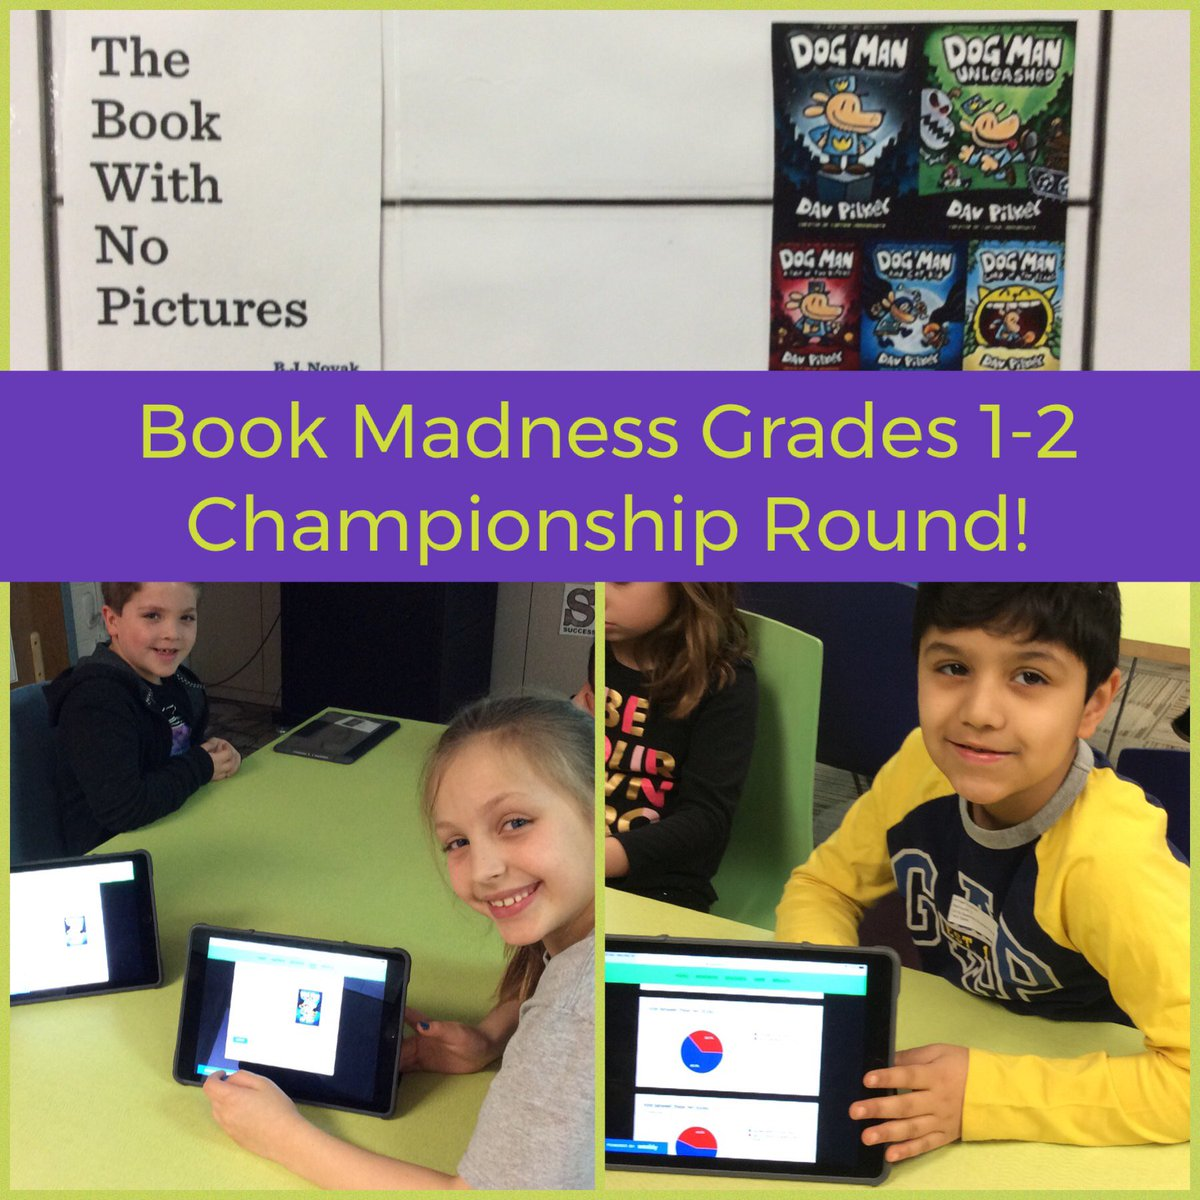 test Twitter Media - It's the Championship Round for Grade 1-2 Book Madness at Wescott! Who will win? The Book with No Pictures by @bjnovak or the Dog Man series by Dav Pilkey?  Students in @Wescott2S voted this morning!  #d30learns #d30reads #bookmadness @Wescott2W https://t.co/FkASKipDIq